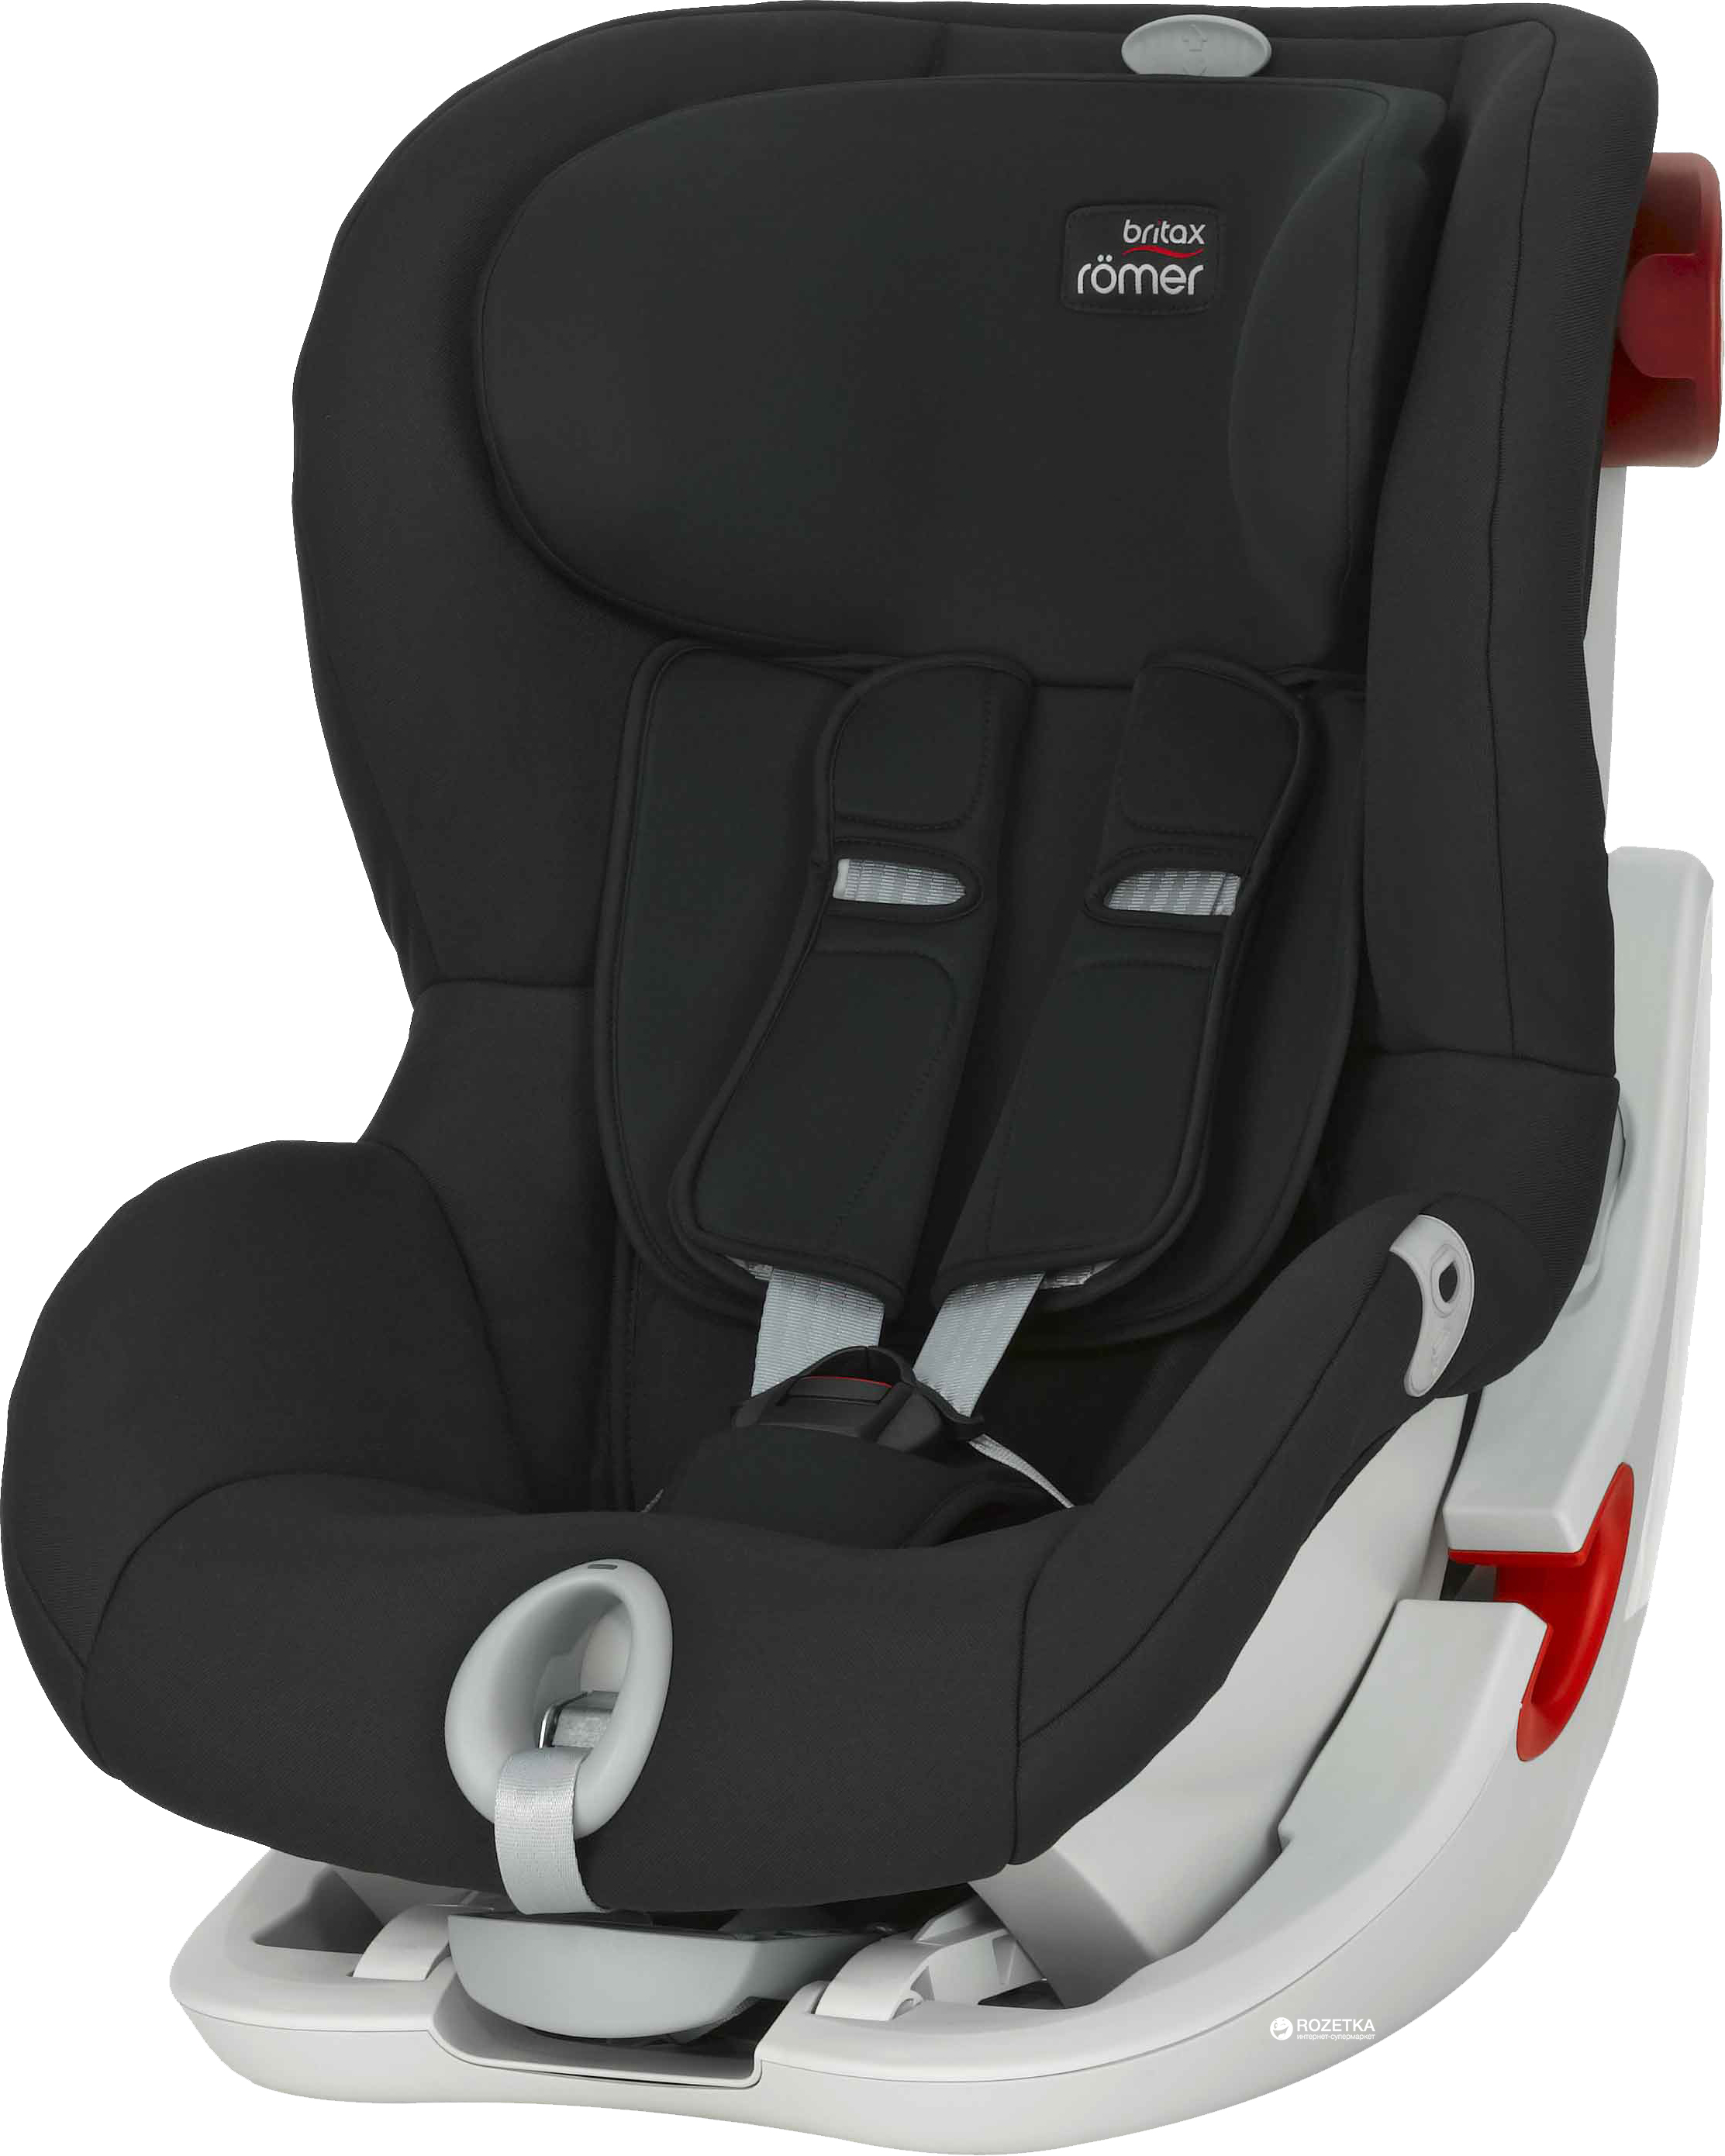 Junior Crew Car Seat Reviews